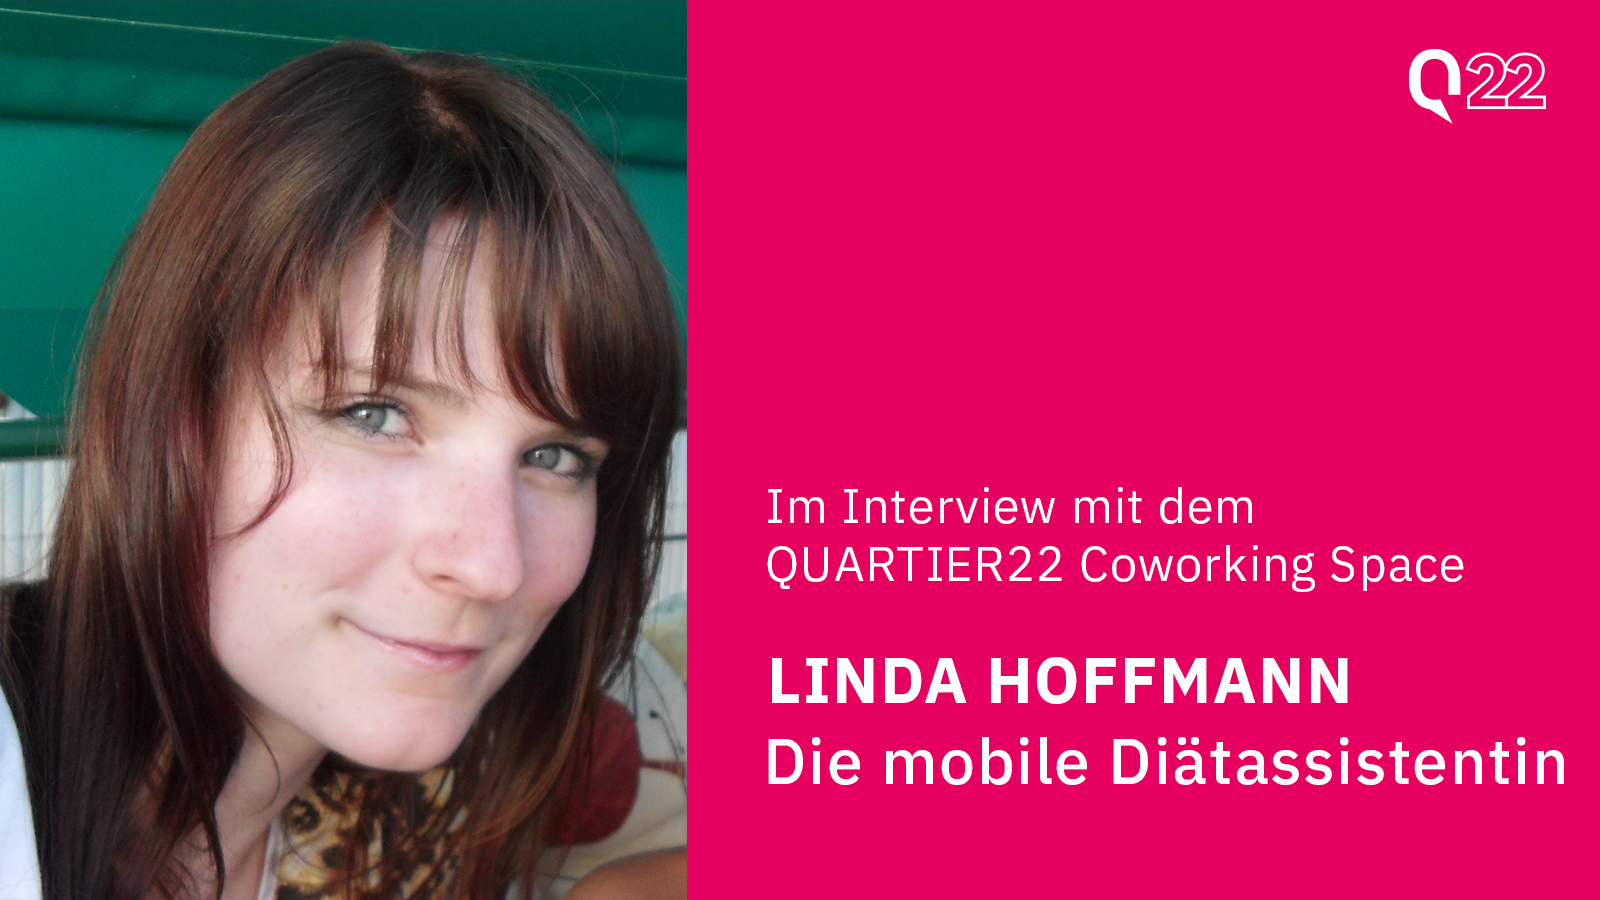 Quartier22 Coworking Space im Interview mit Linda Hoffmann - Die mobile Diätassistentin